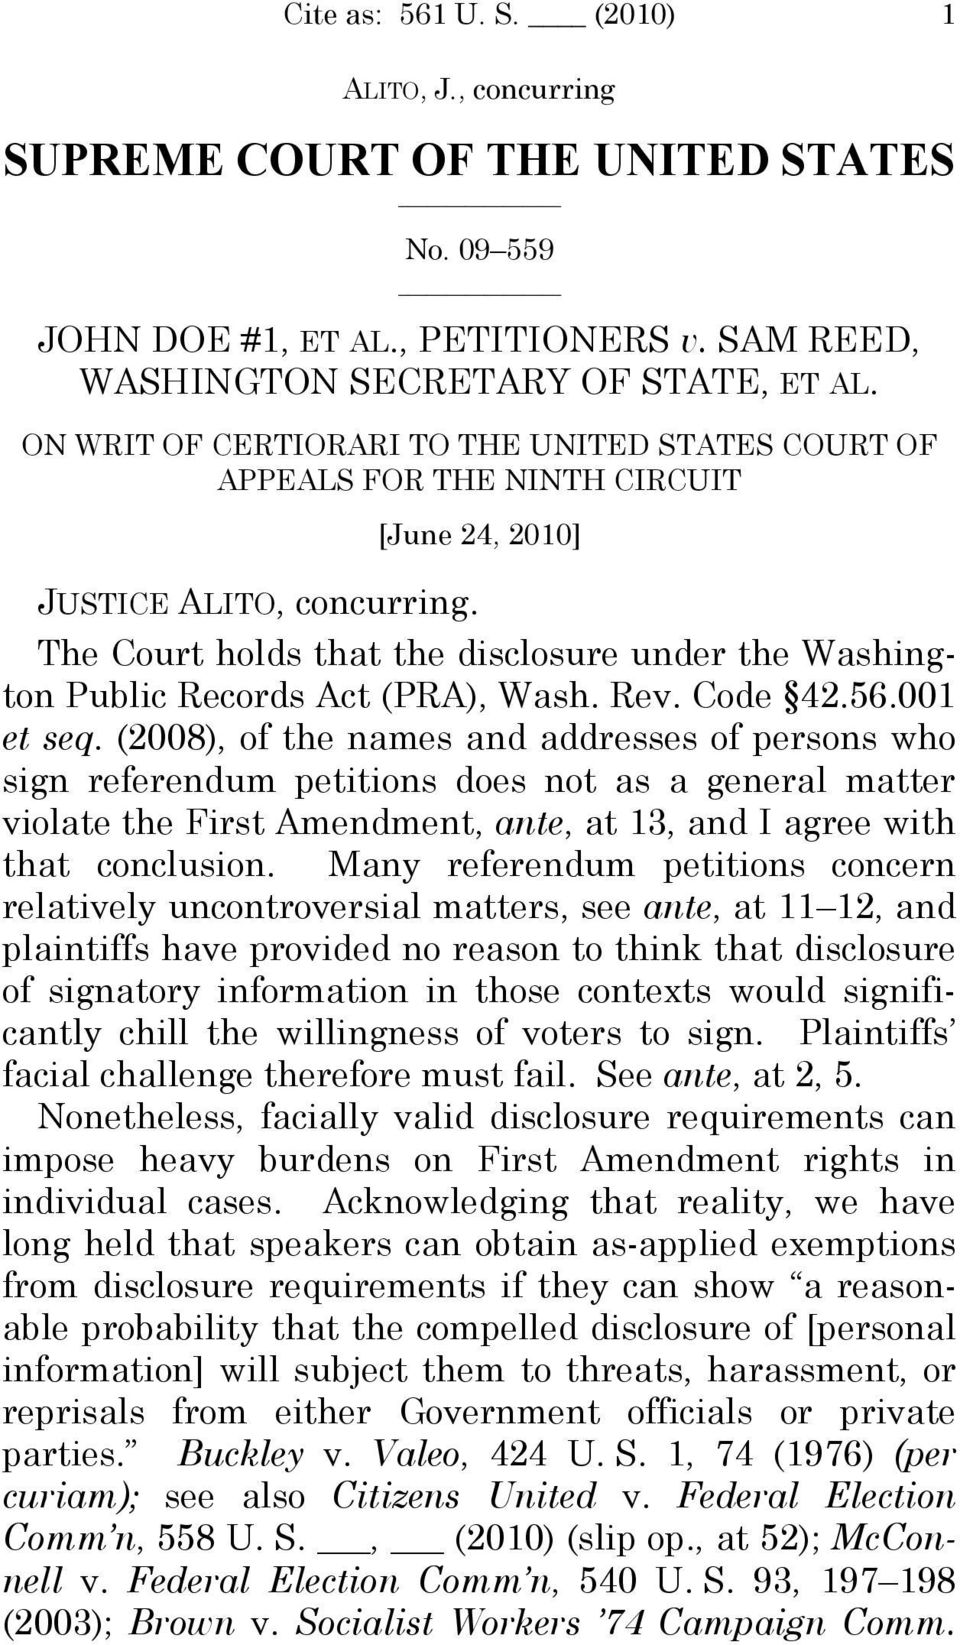 [June 24, 2010] The Court holds that the disclosure under the Washington Public Records Act (PRA), Wash. Rev. Code 42.56.001 et seq.